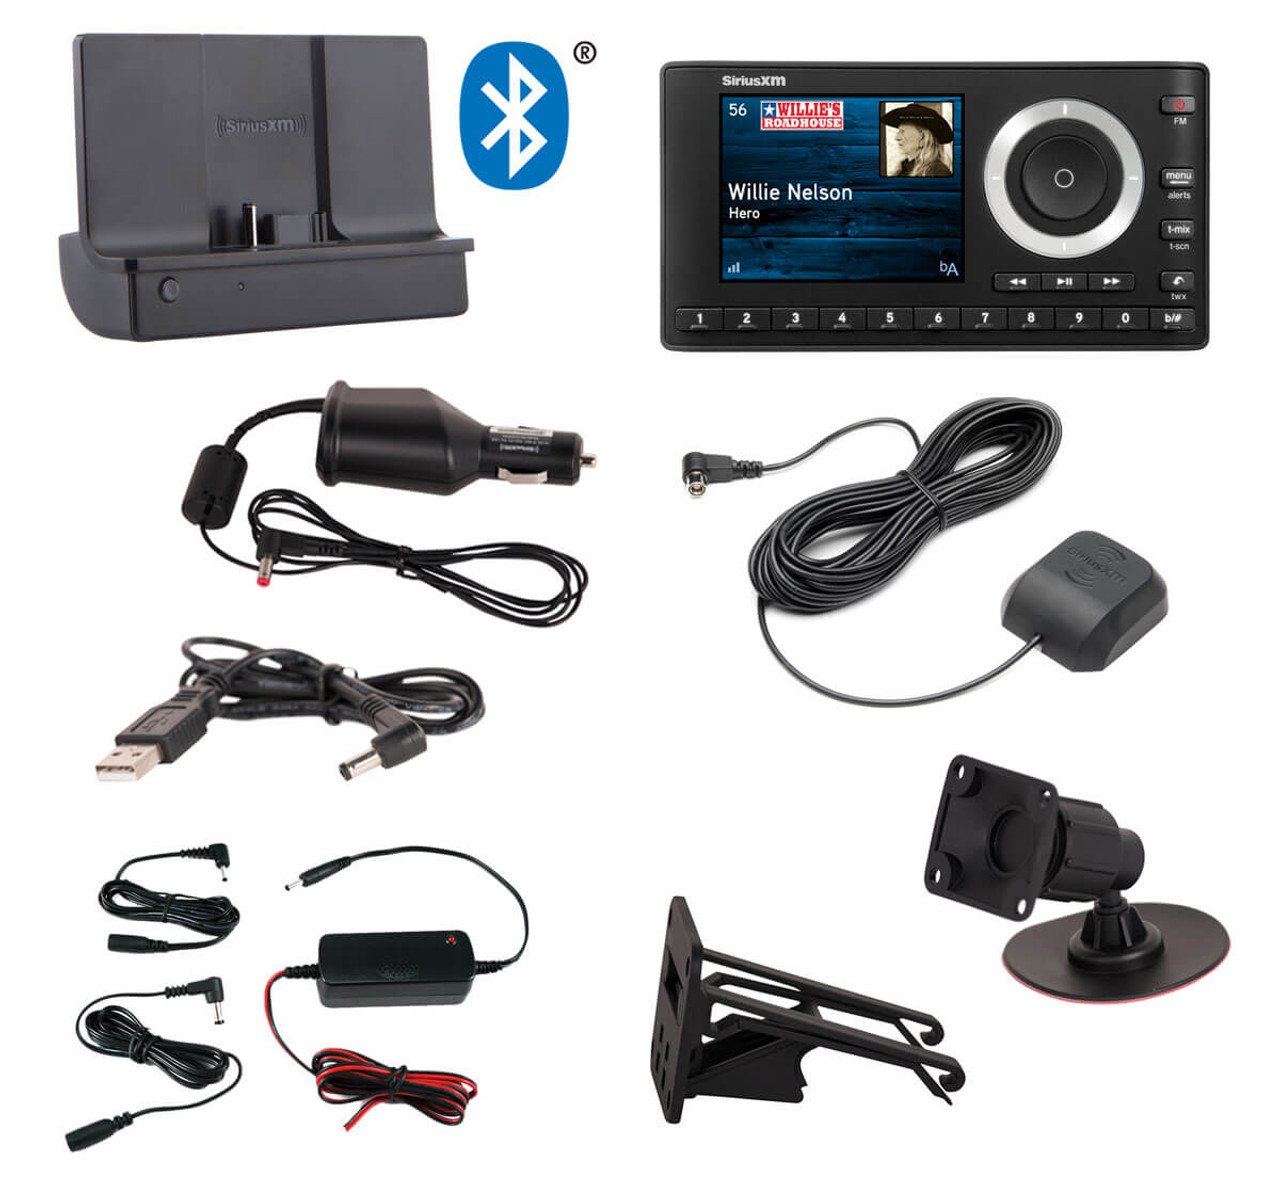 CAR MOUNT KIT For Sirius XM Satellite Radio Truck Dual USB Portable Music Dock